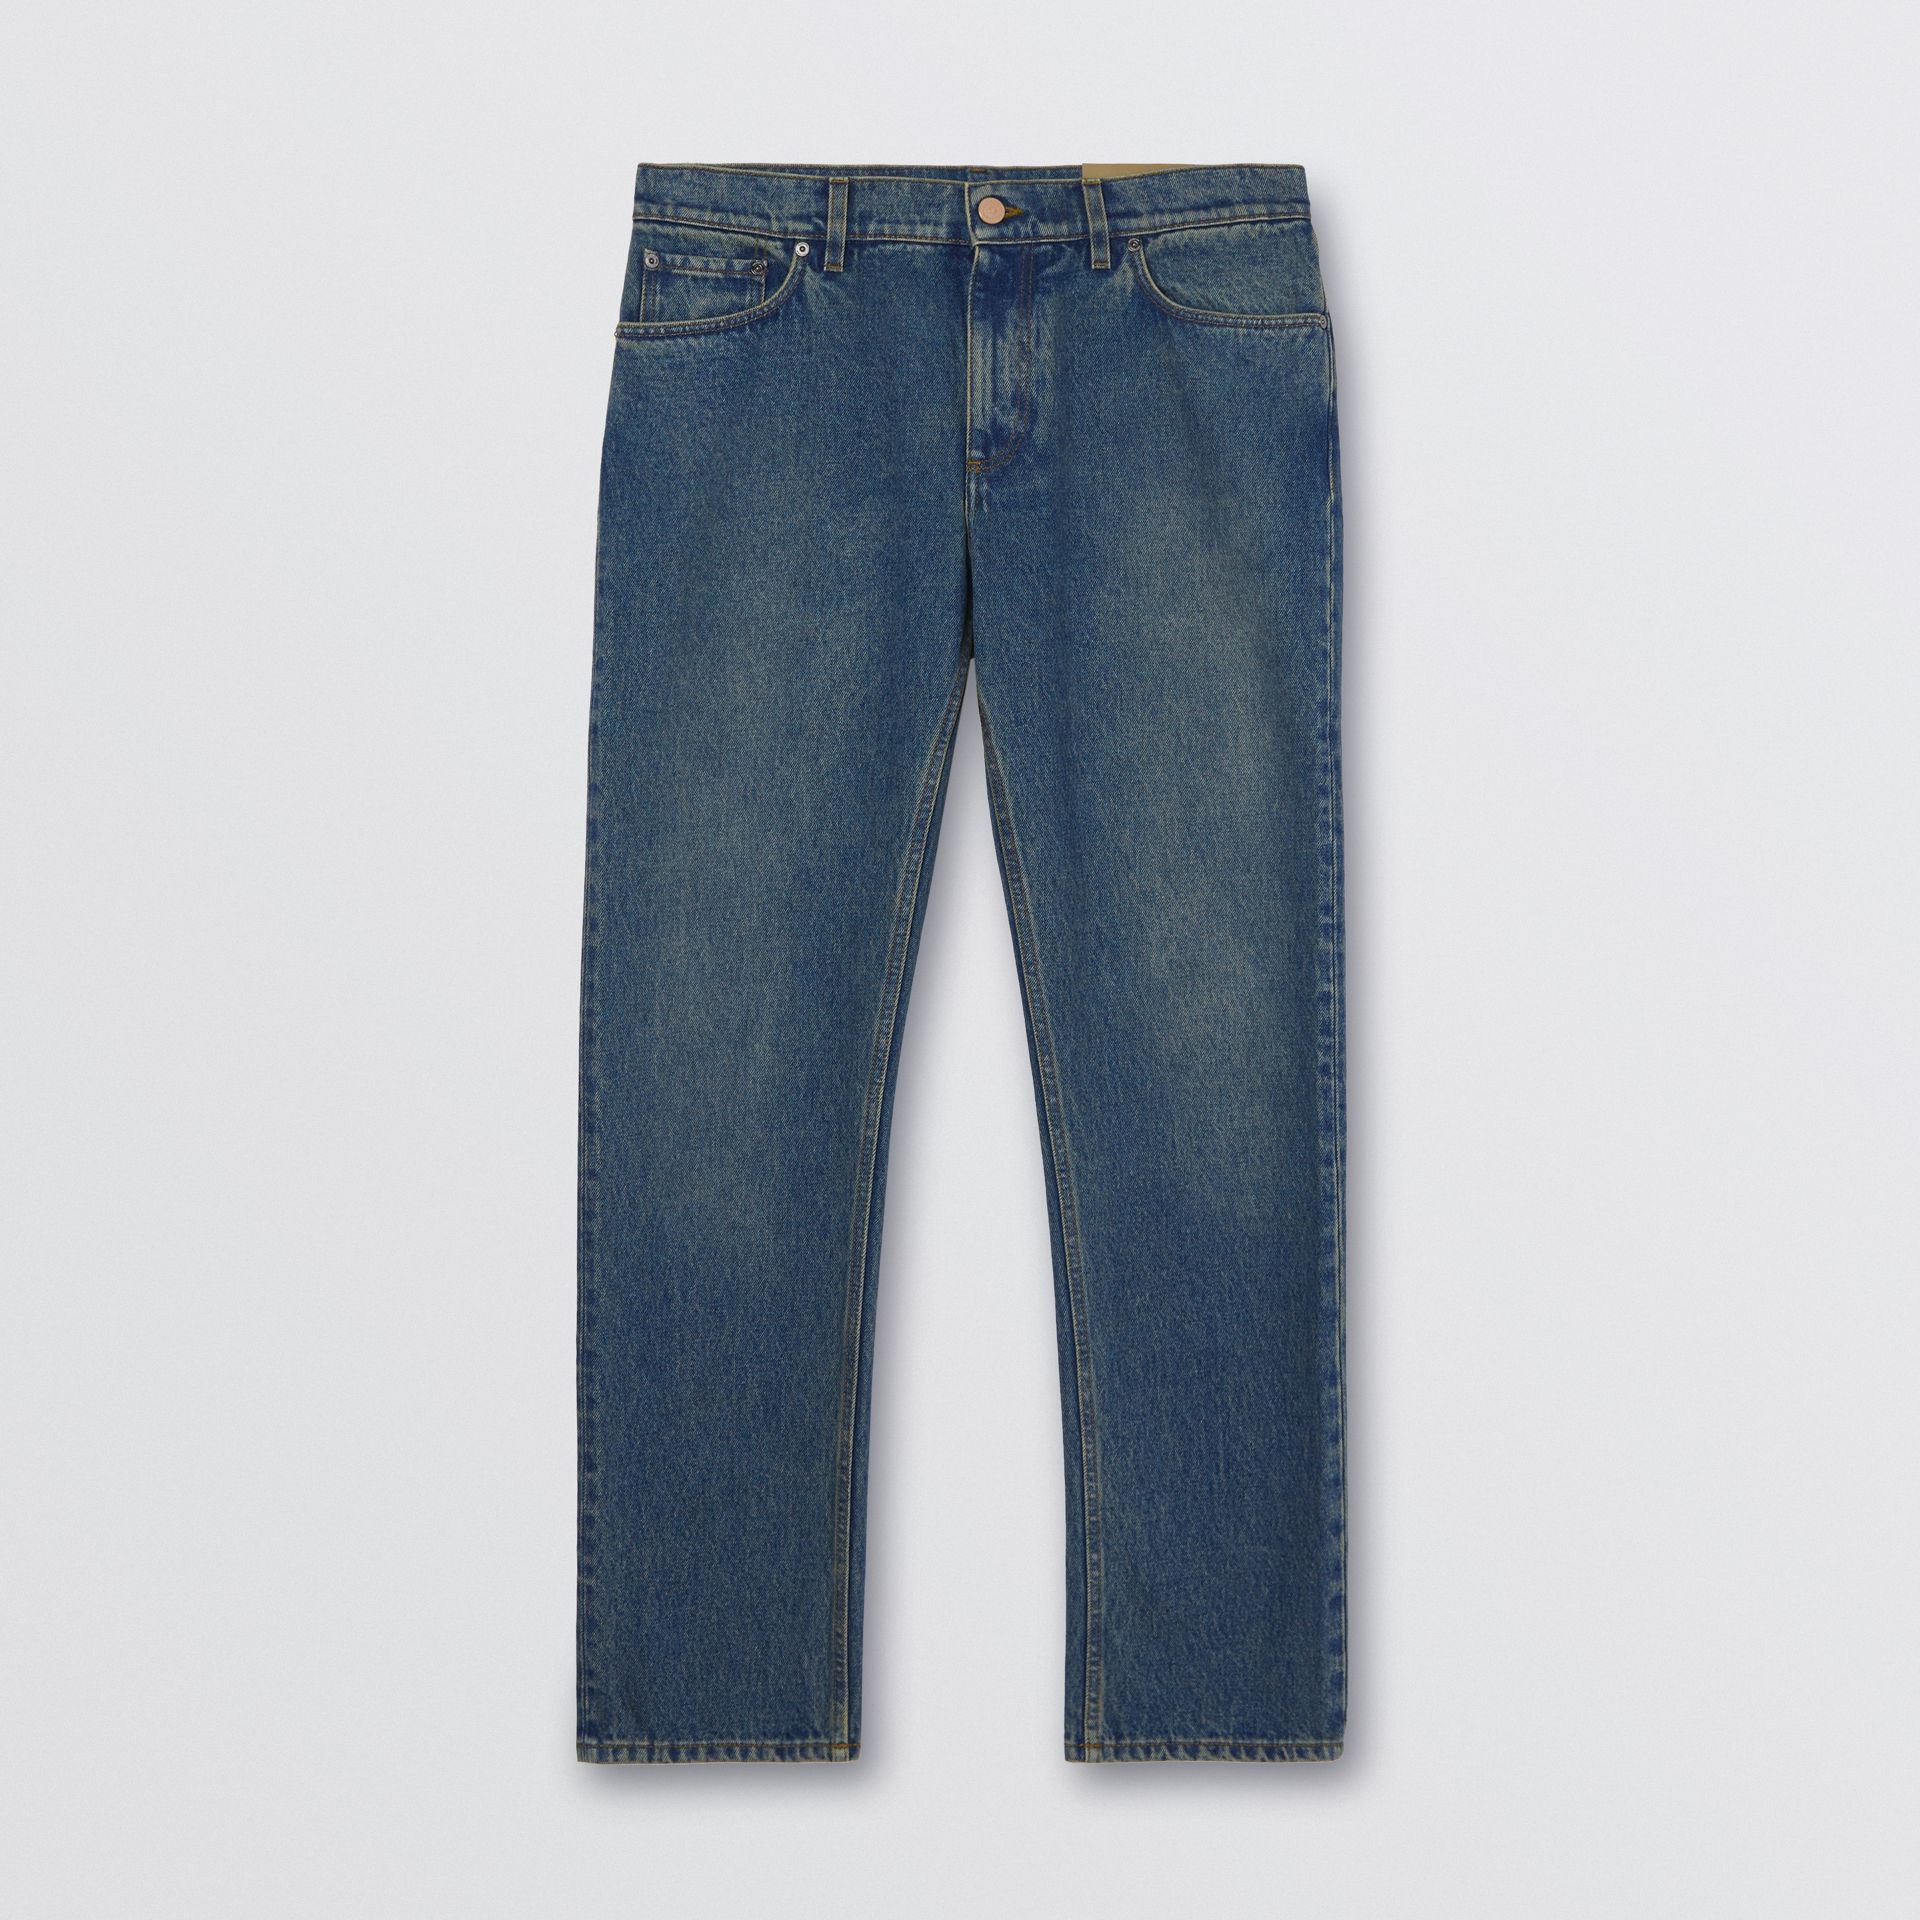 Straight Fit Washed Jeans in Indigo - Men | Burberry - gallery image 3